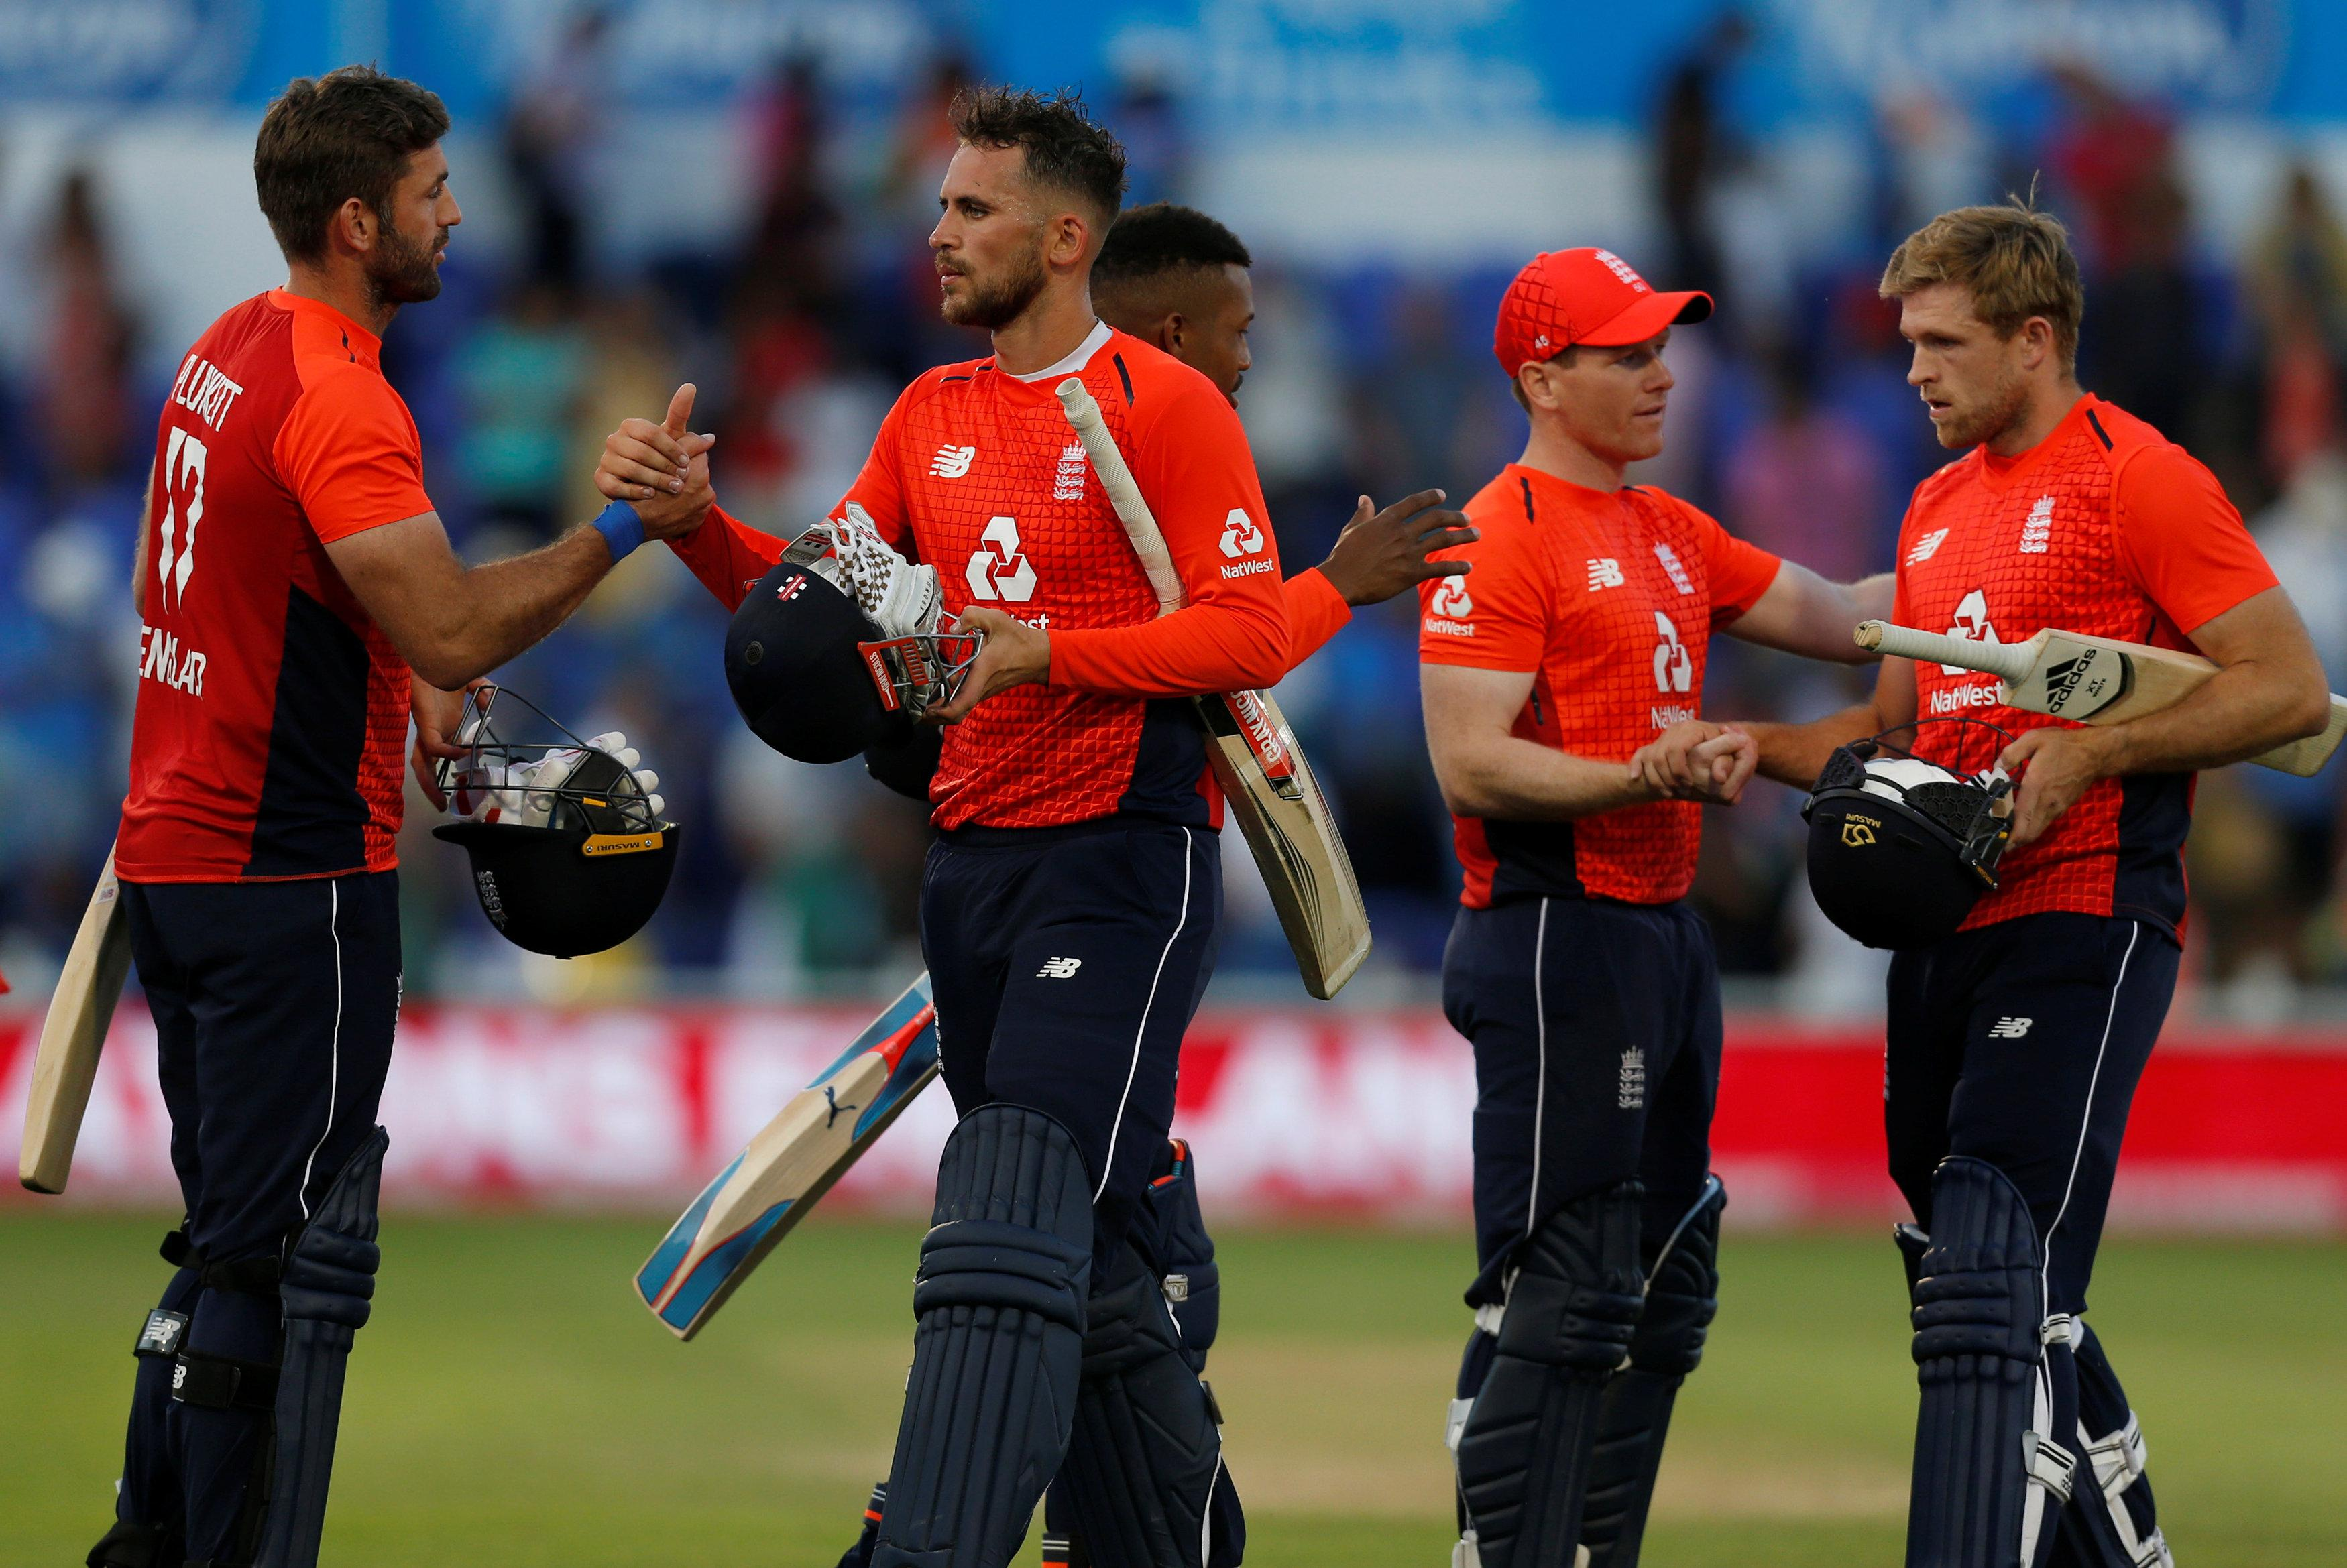 Alex Hales sealed a five-wicket victory for England in Cardiff